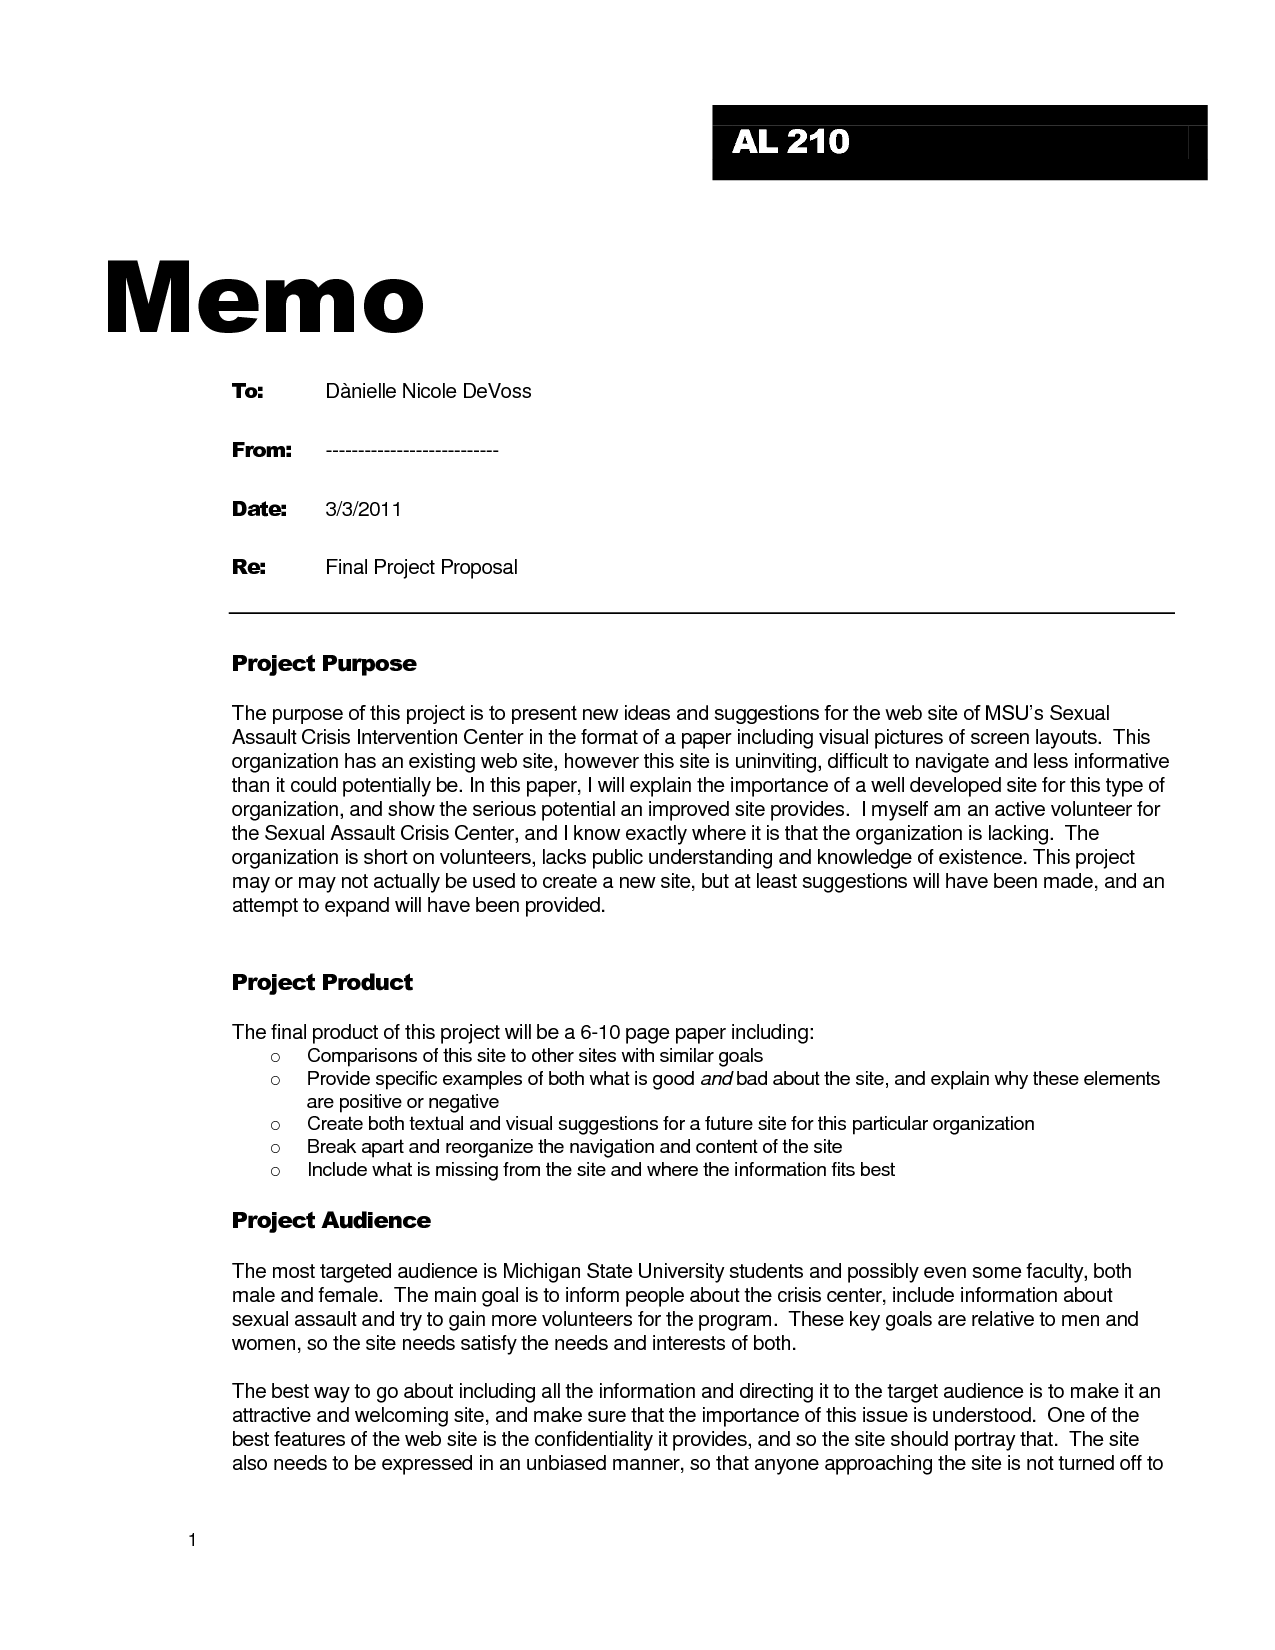 sample business memo examples